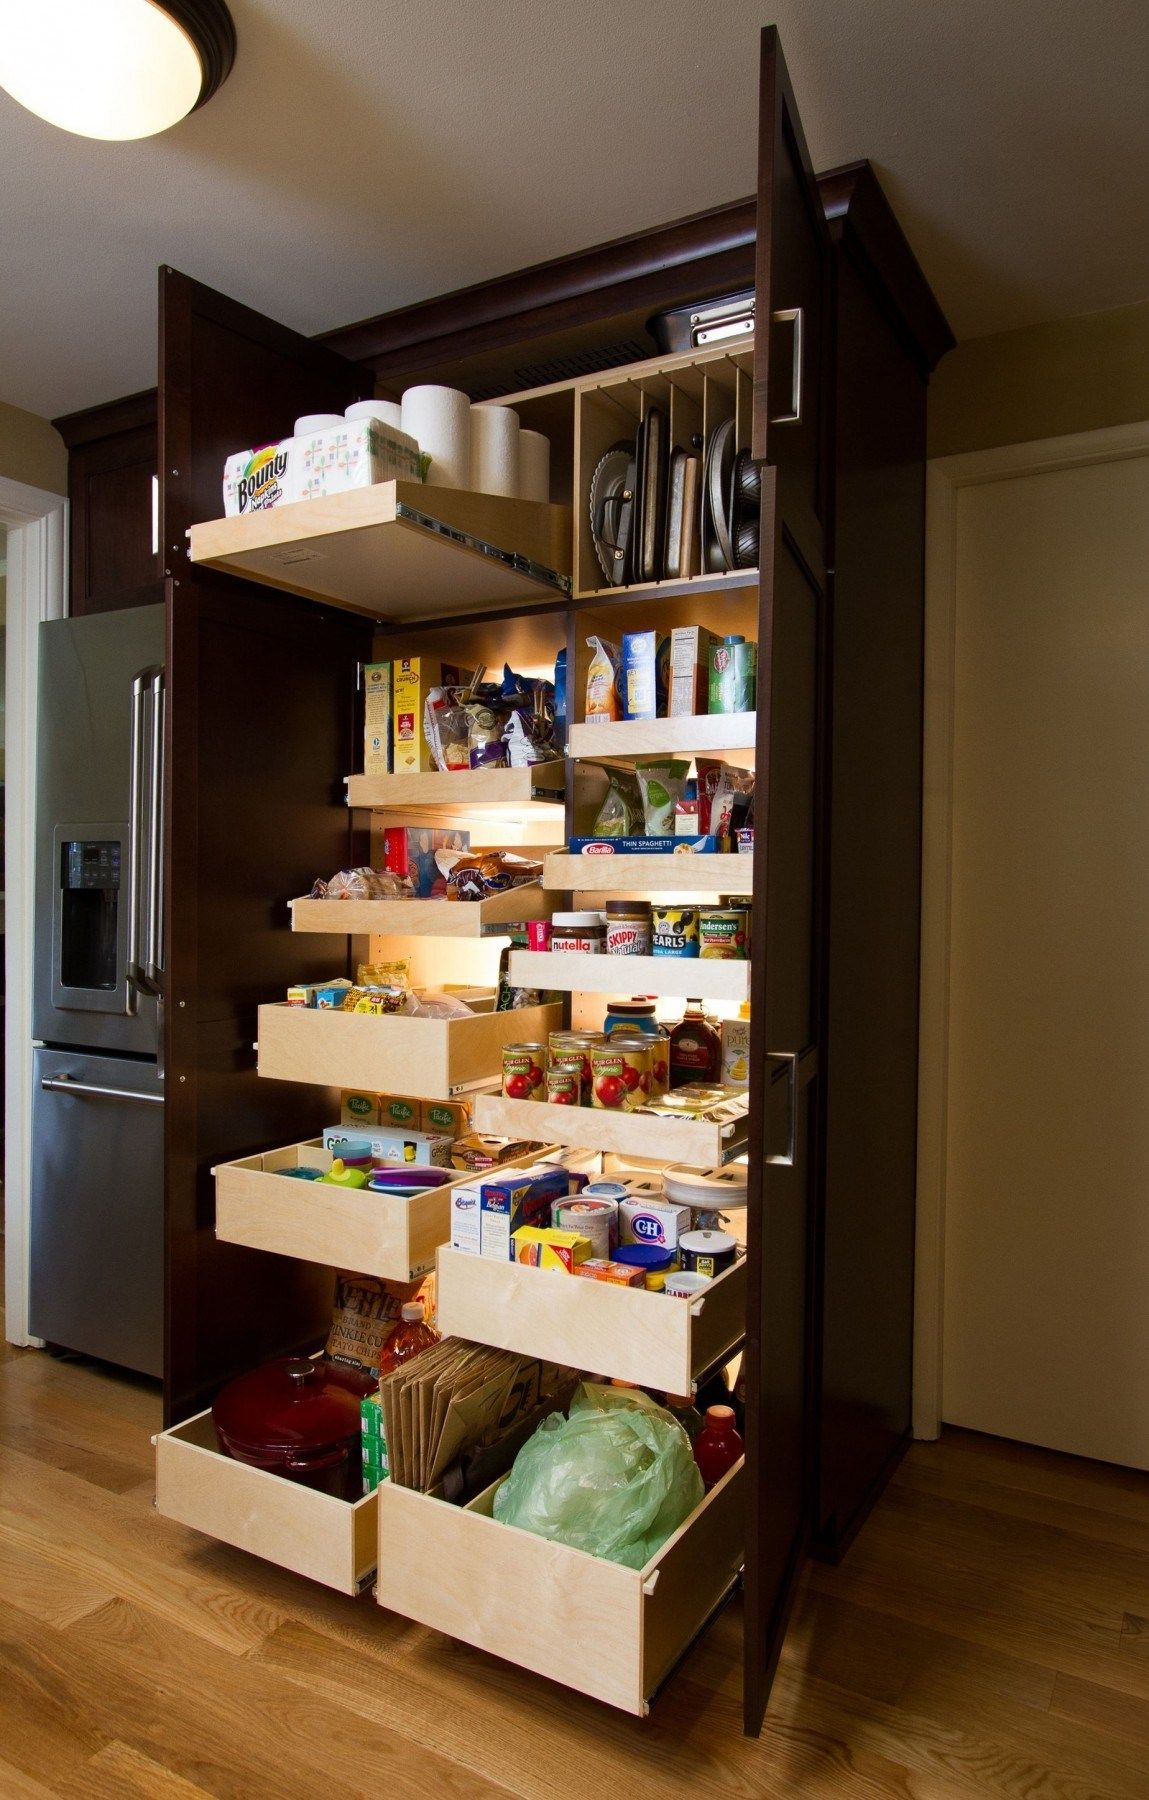 Kitchen Cabinet Organizers (Corner and Pull Out Organizer Ideas) #cabinetorganizers